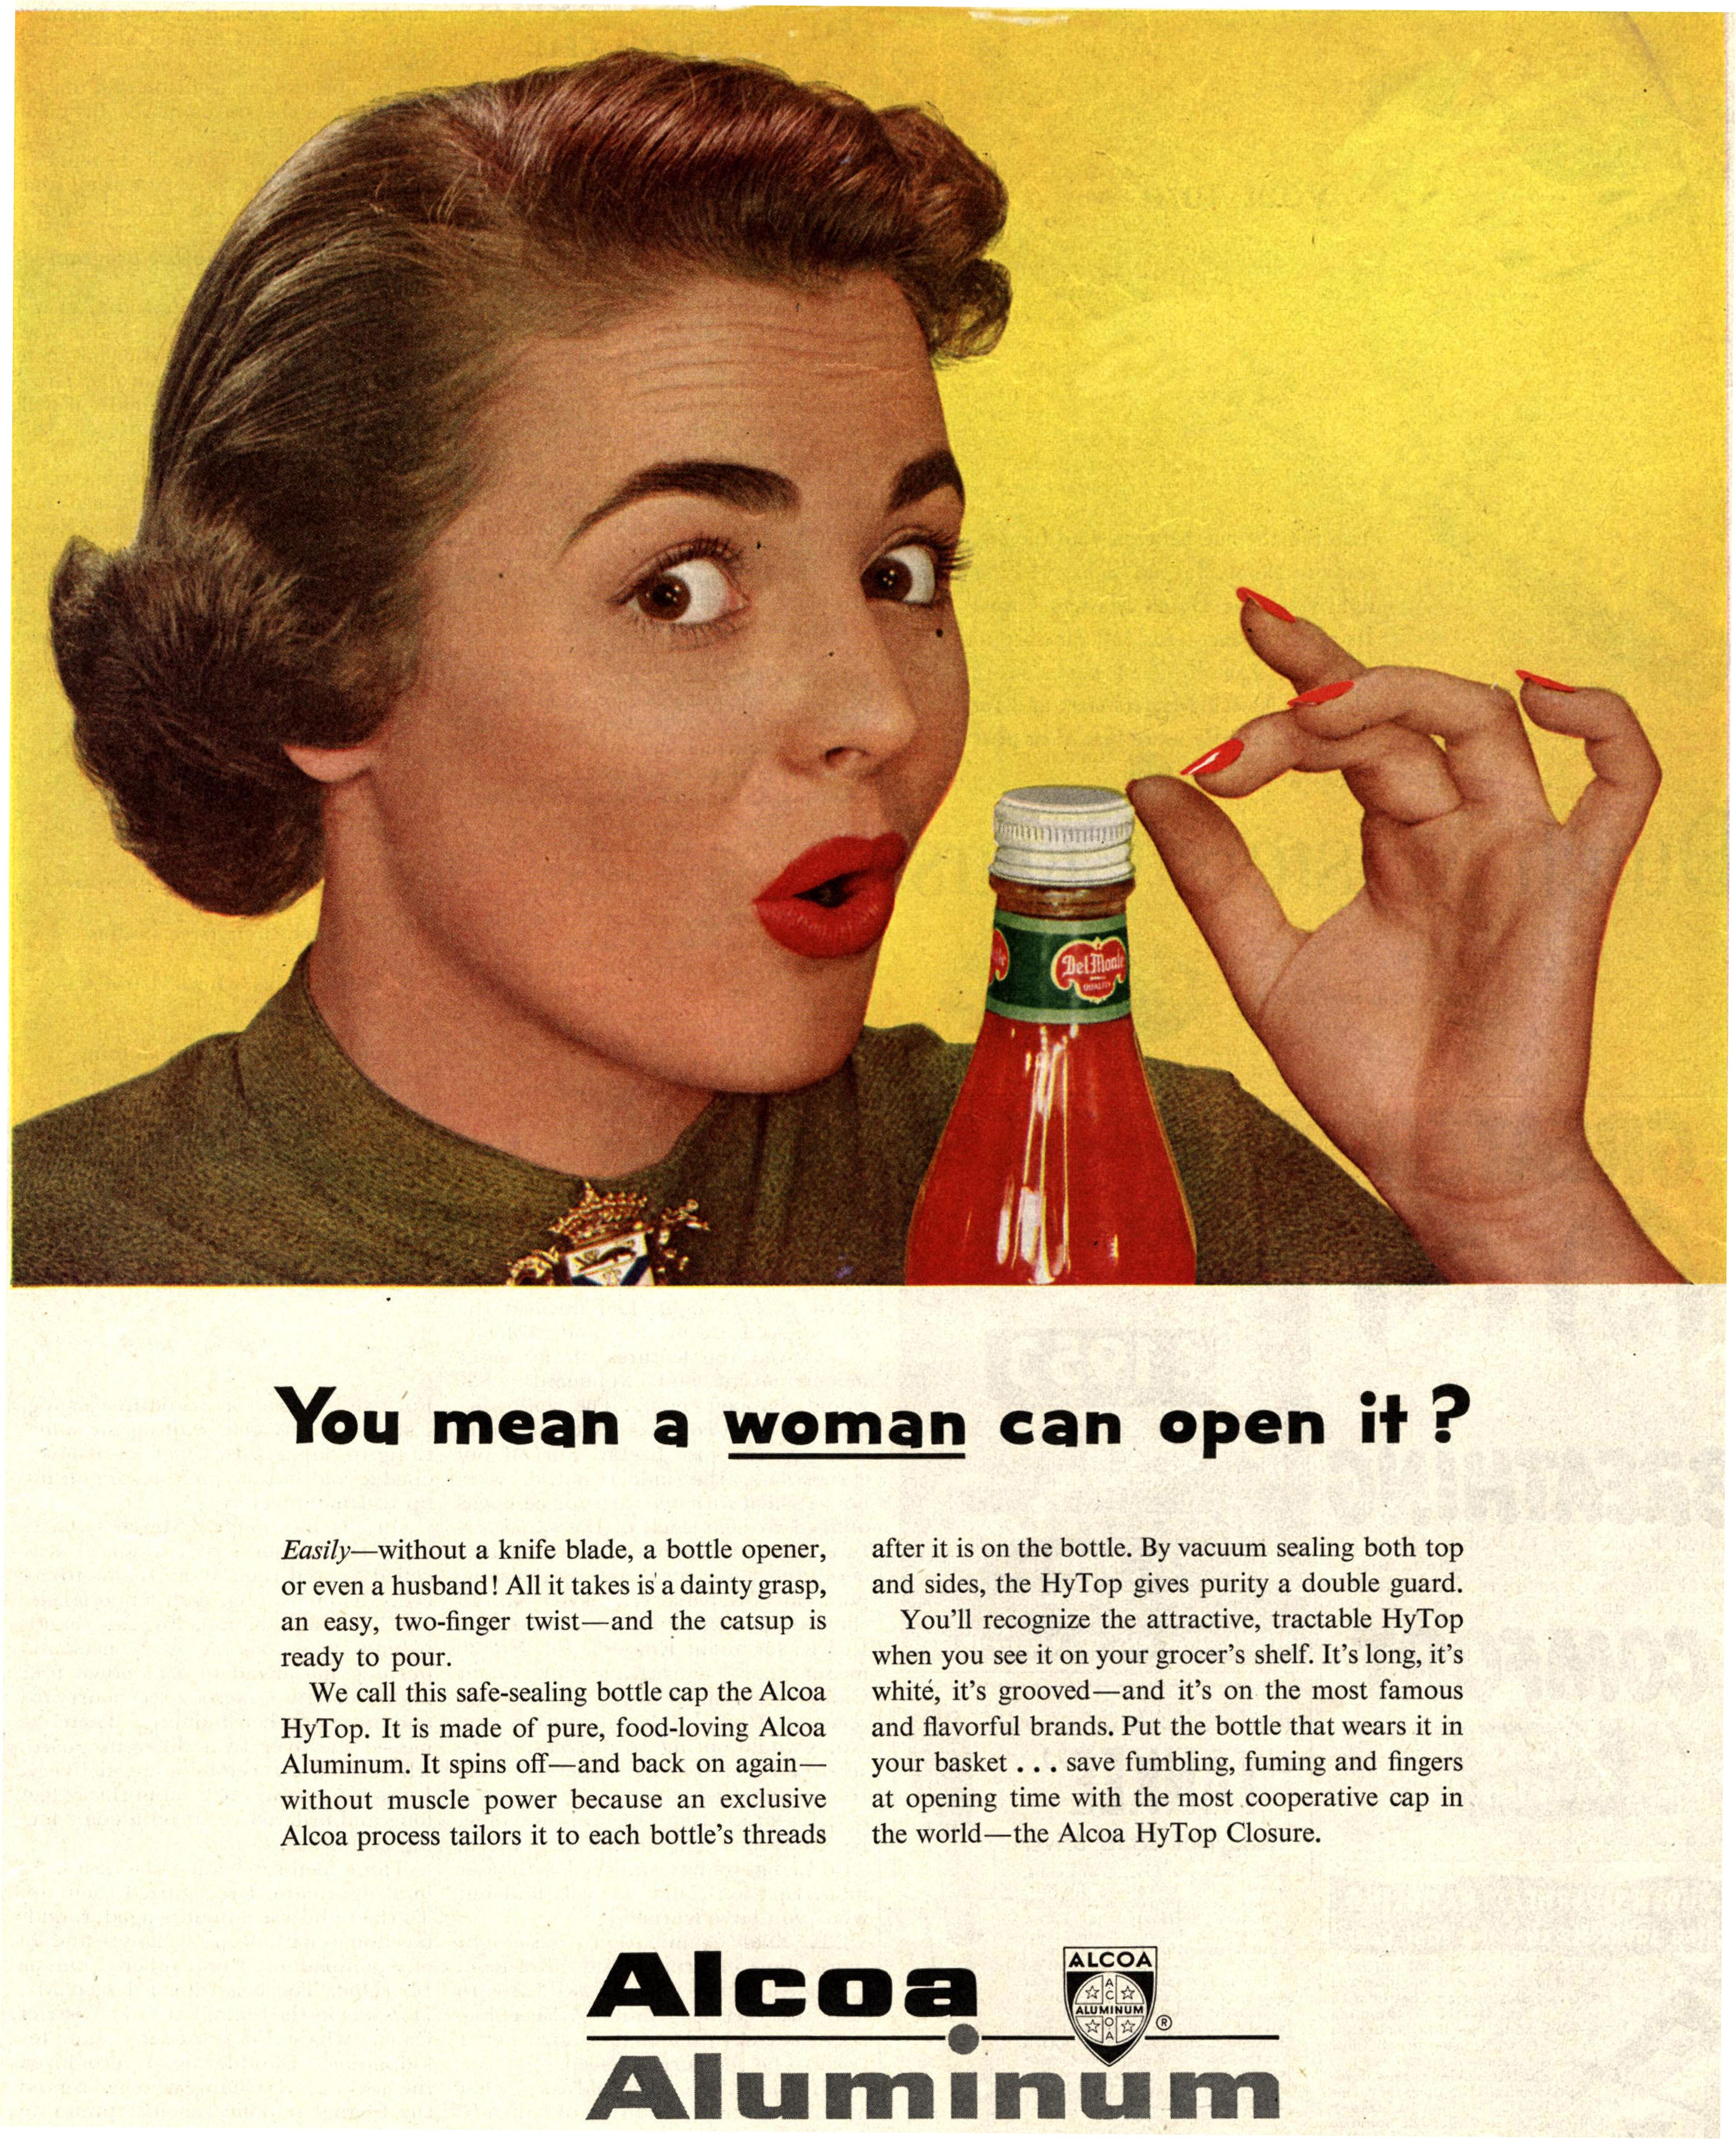 Stereotyping in Marketing Campaigns | Vintage Ad